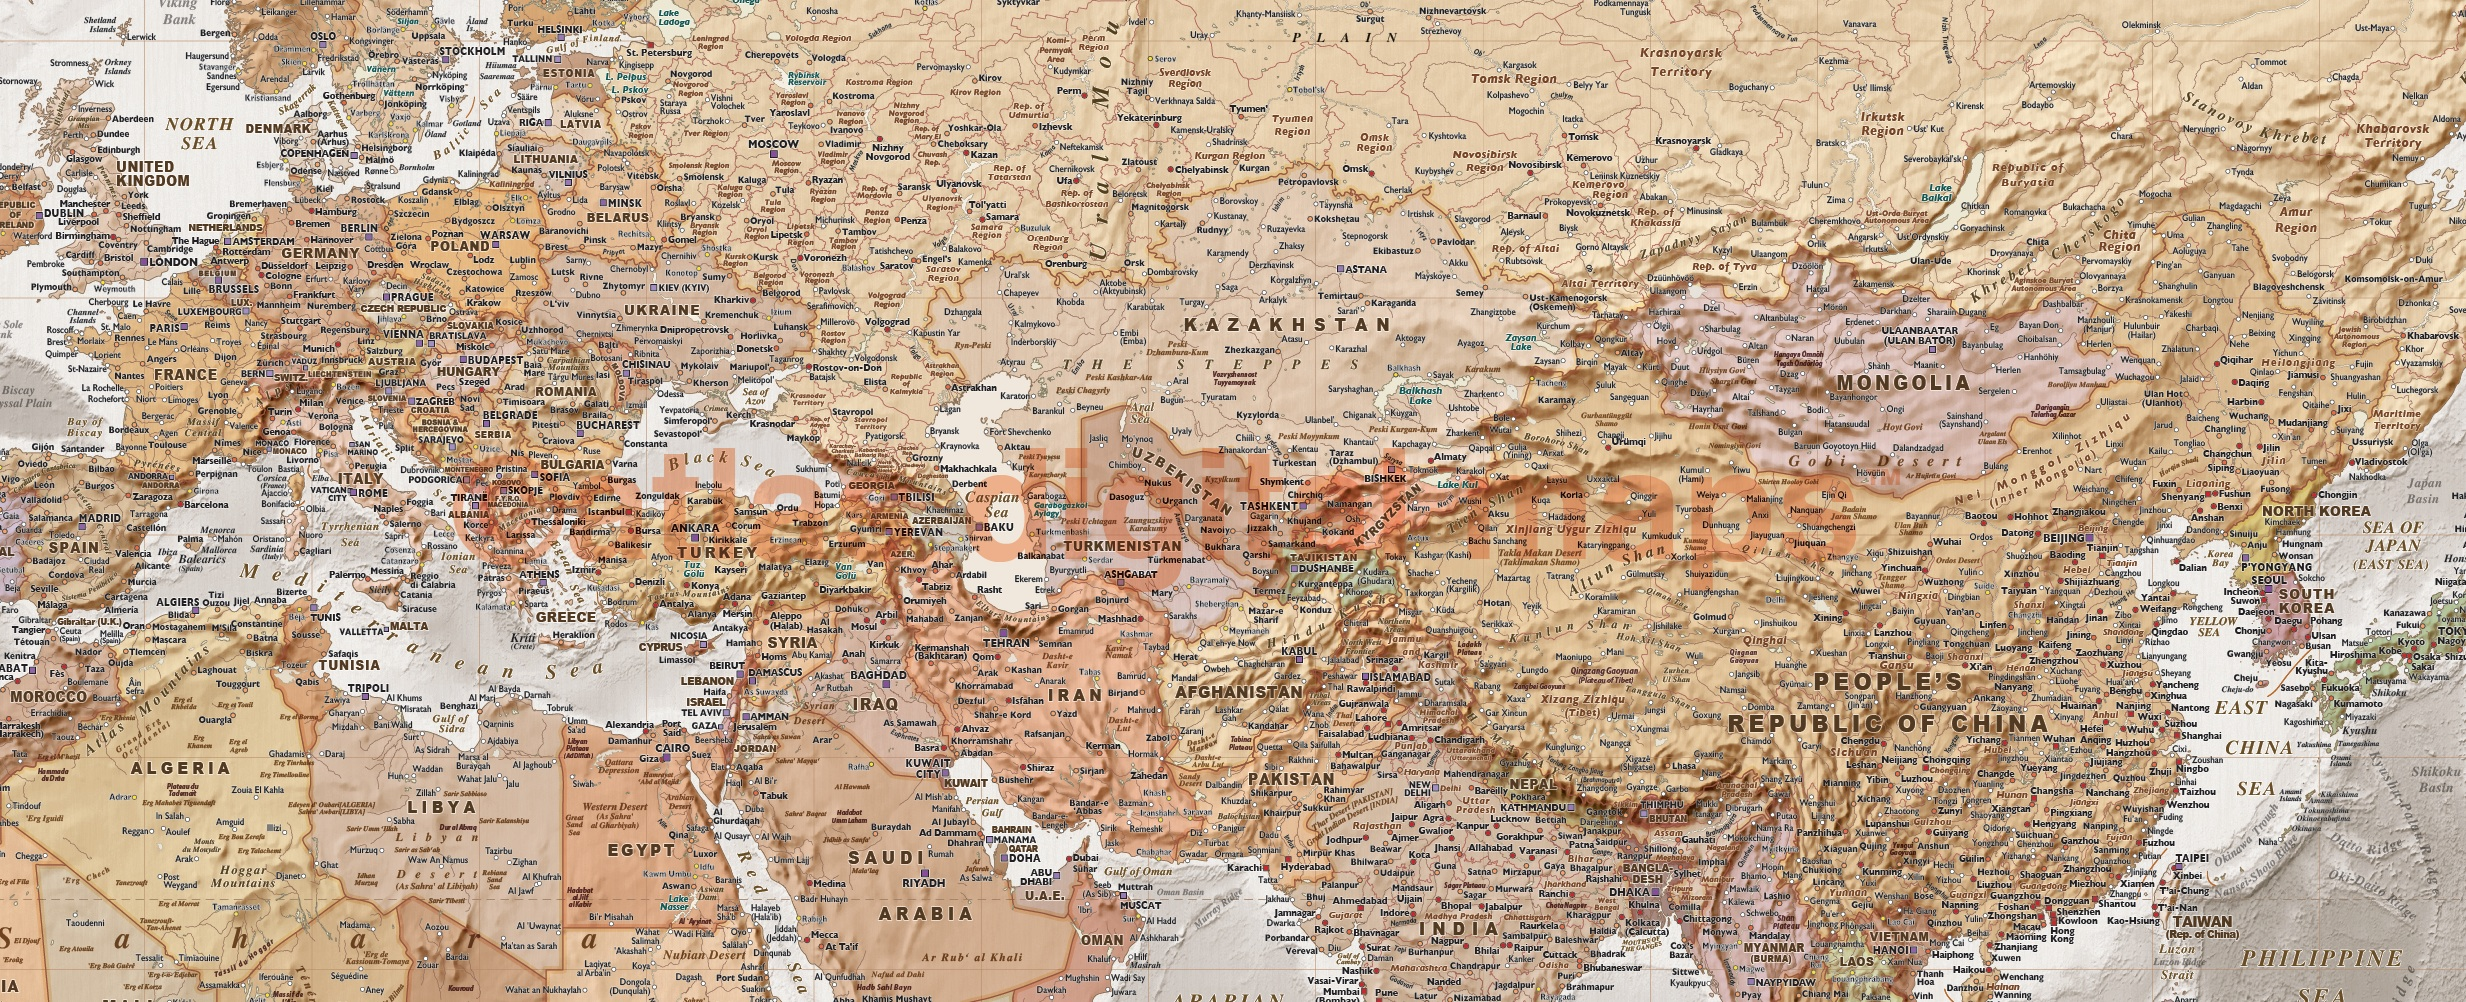 Rolled canvas world wall map tan and stone grey oceans large 60 x framed canvas world map antique style tan and stone size 60w x 38 sciox Images